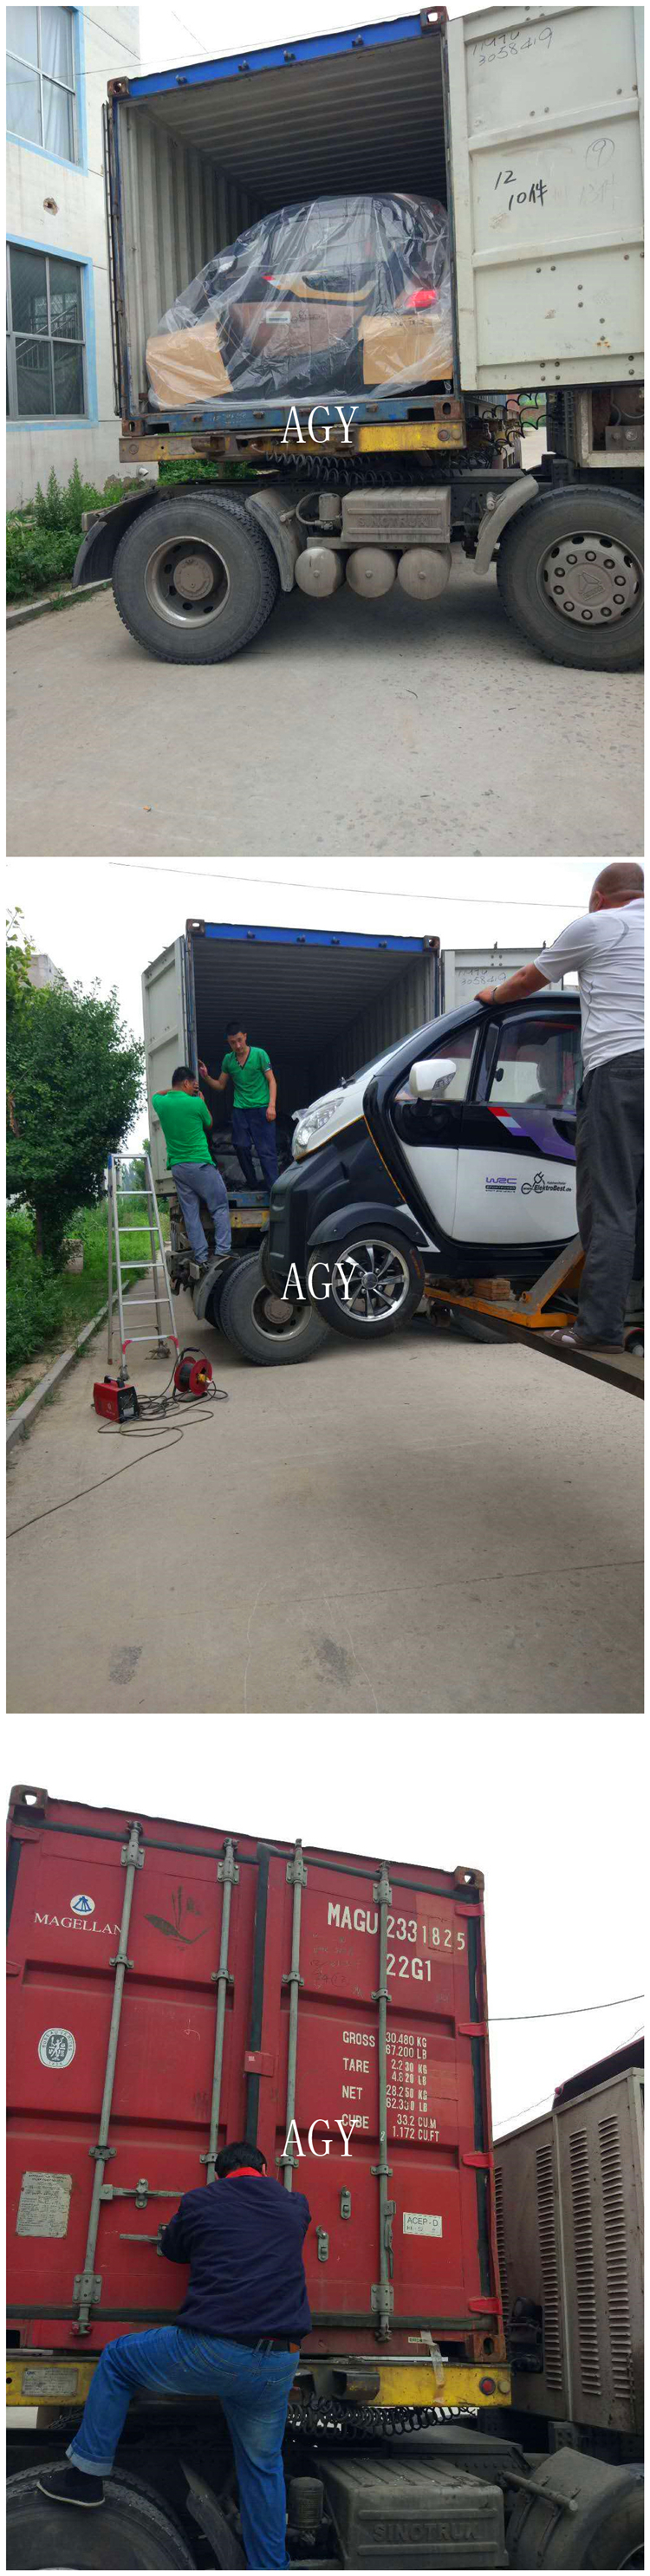 AGY green power three seater 72v electric car for teenagers